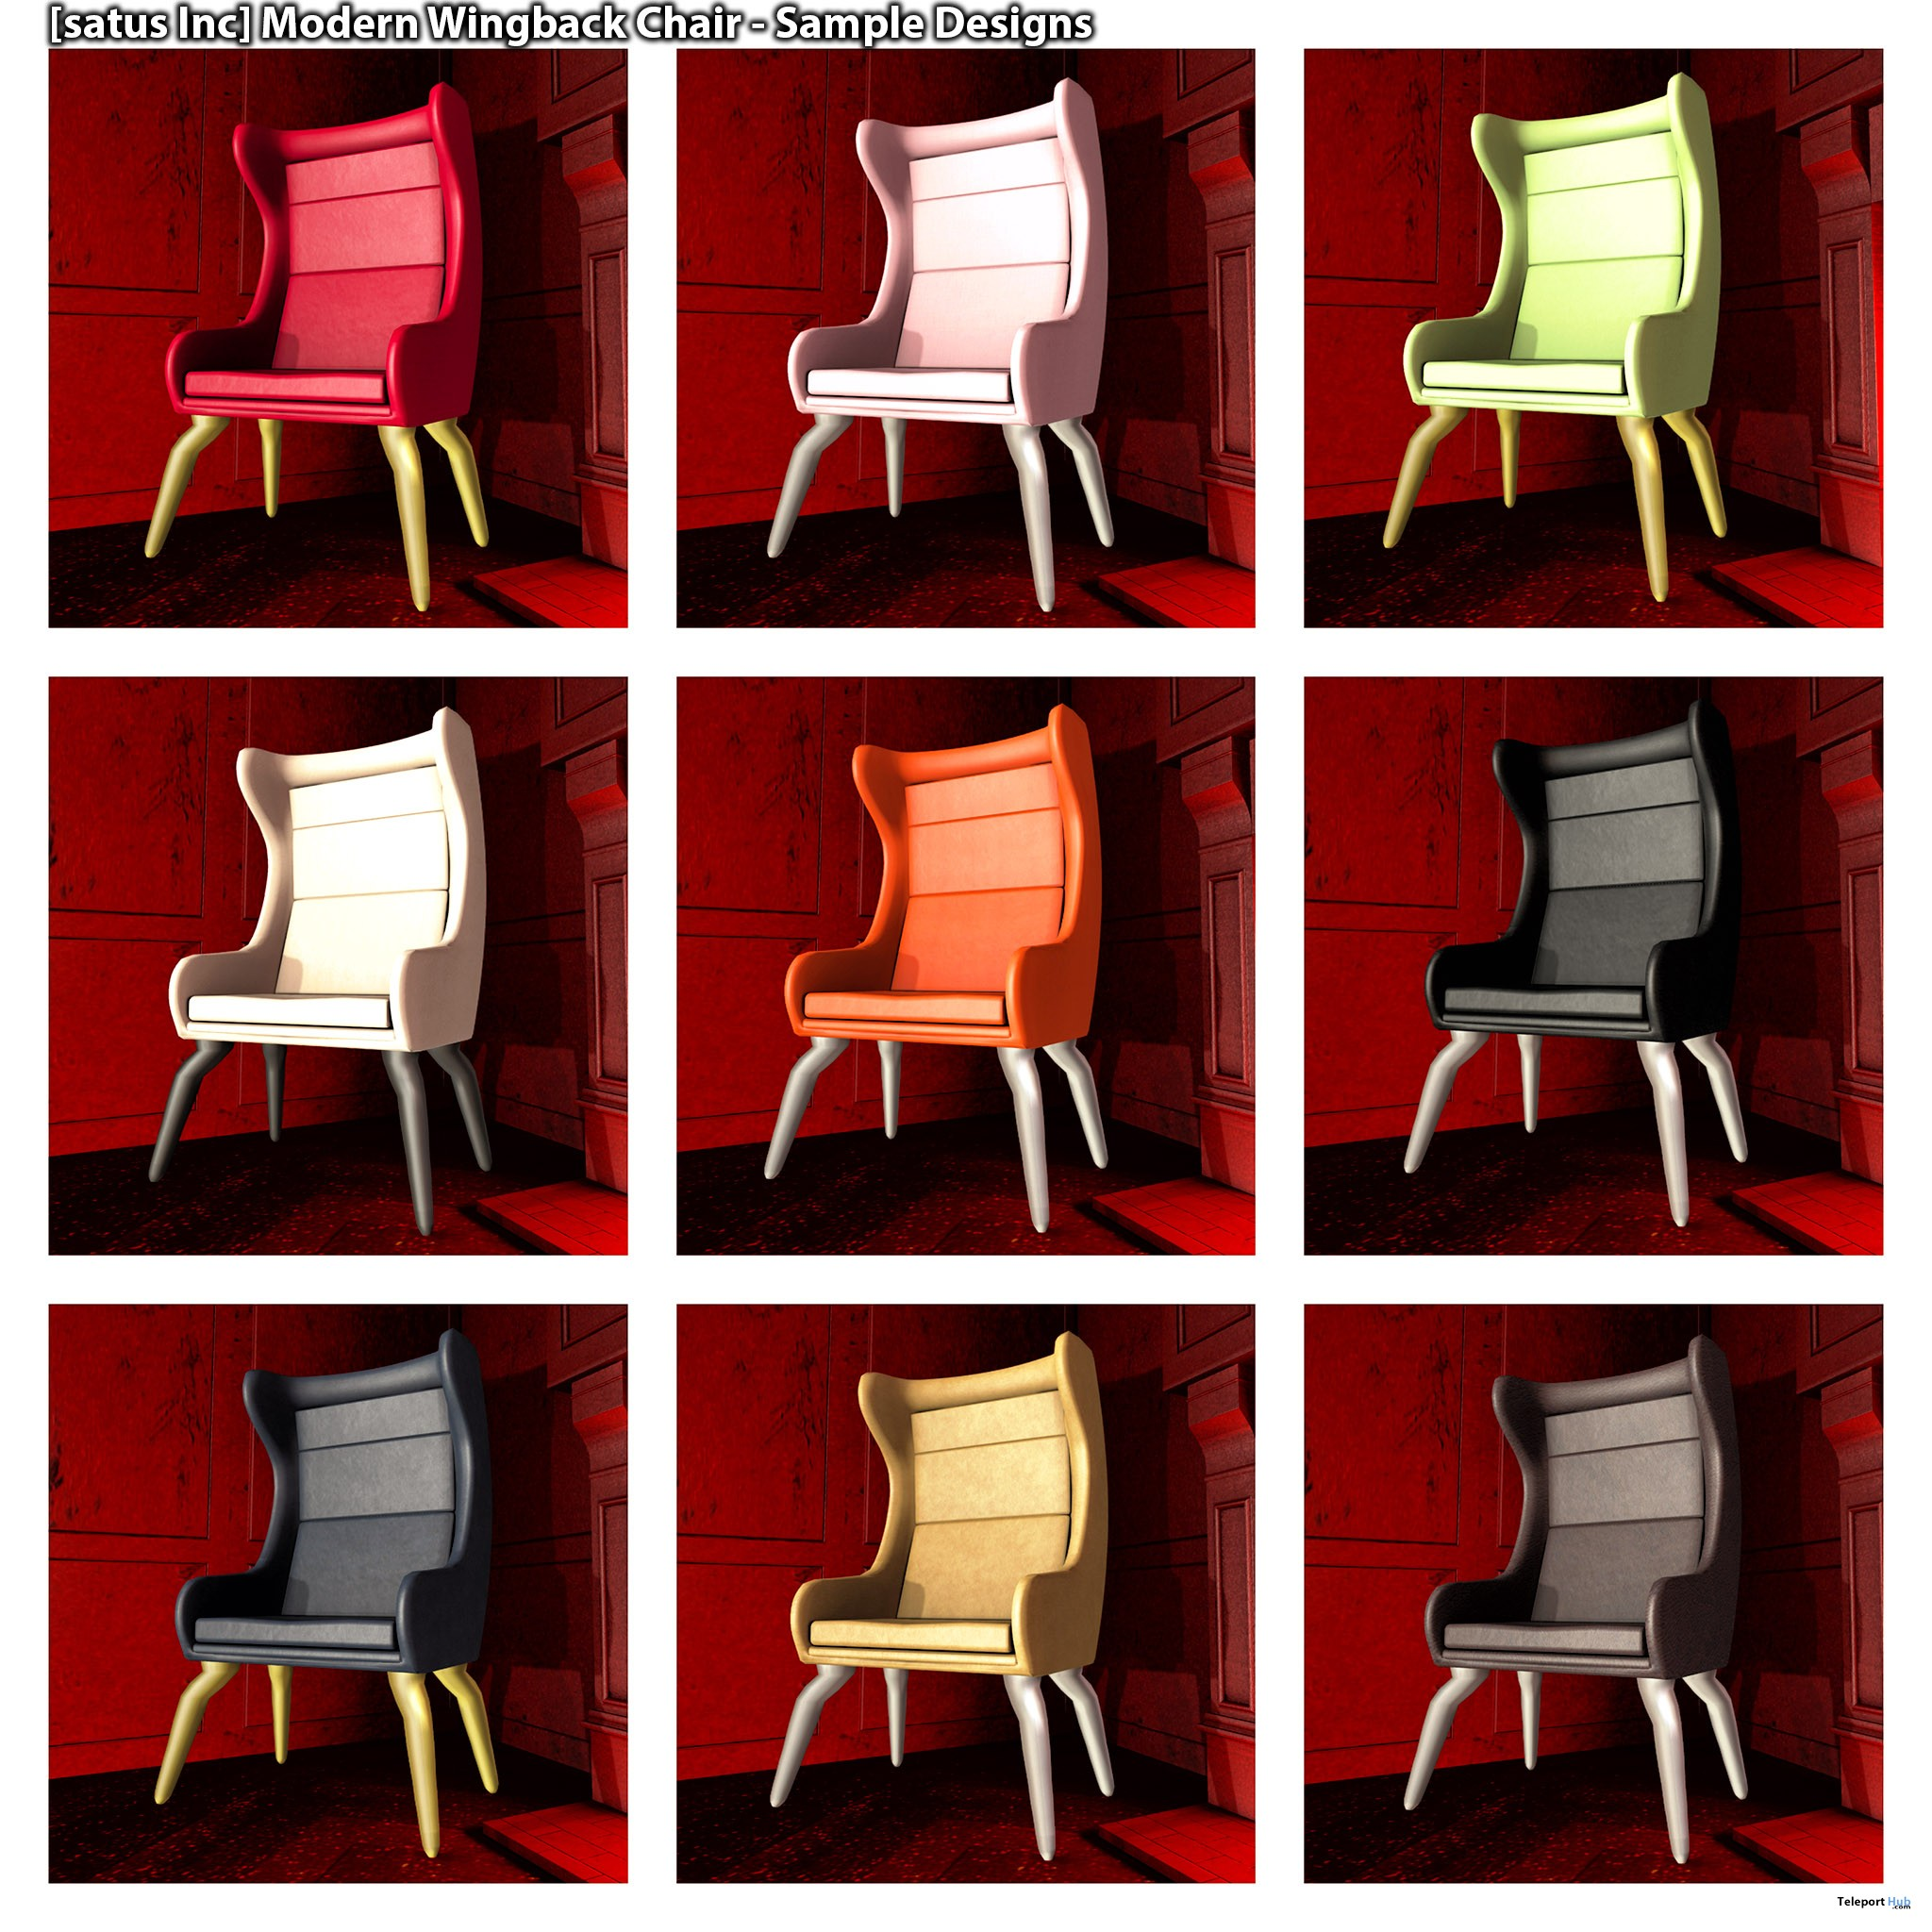 New Release: Modern Wingback Chair [Adult] & [PG] by [satus Inc] - Teleport Hub - teleporthub.com